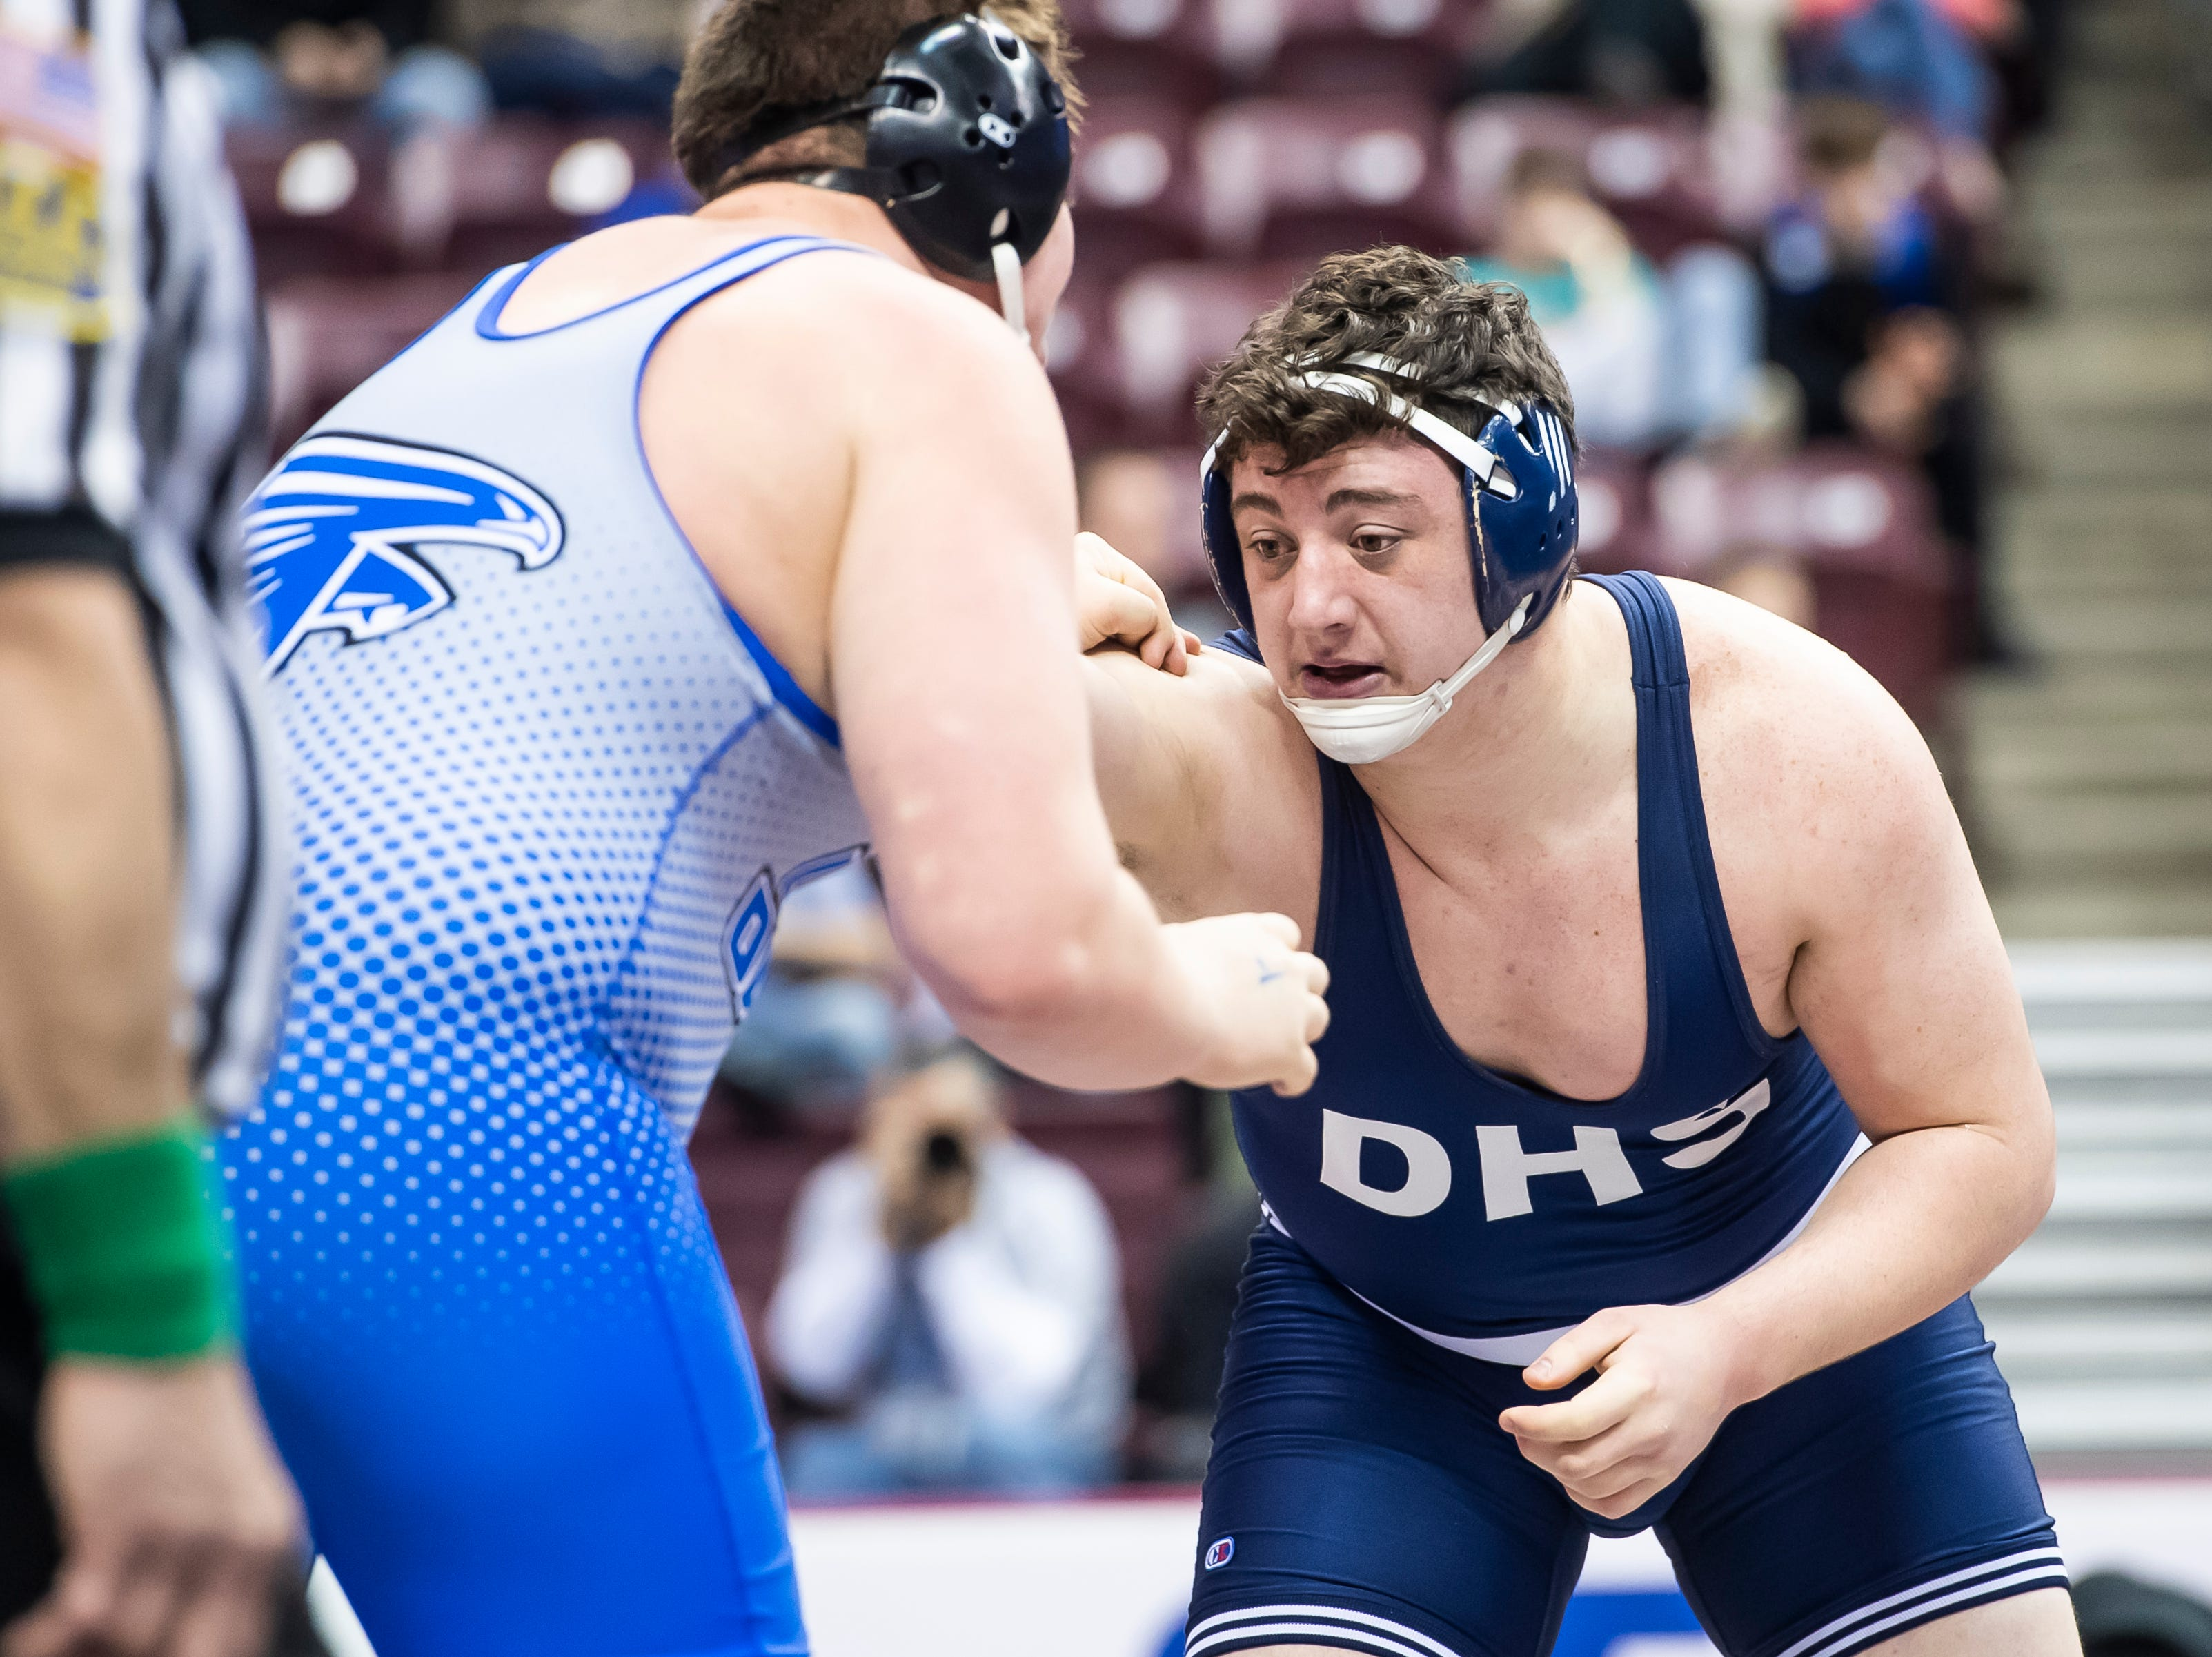 Dallastown's Raymond Christas, right, wrestles Lower Dauphin's Kyle Wuestner during a 3A 285-pound fourth round consolation bout at the Giant Center in Hershey Saturday, March 9, 2019. Christas won by a 6-3 decision.